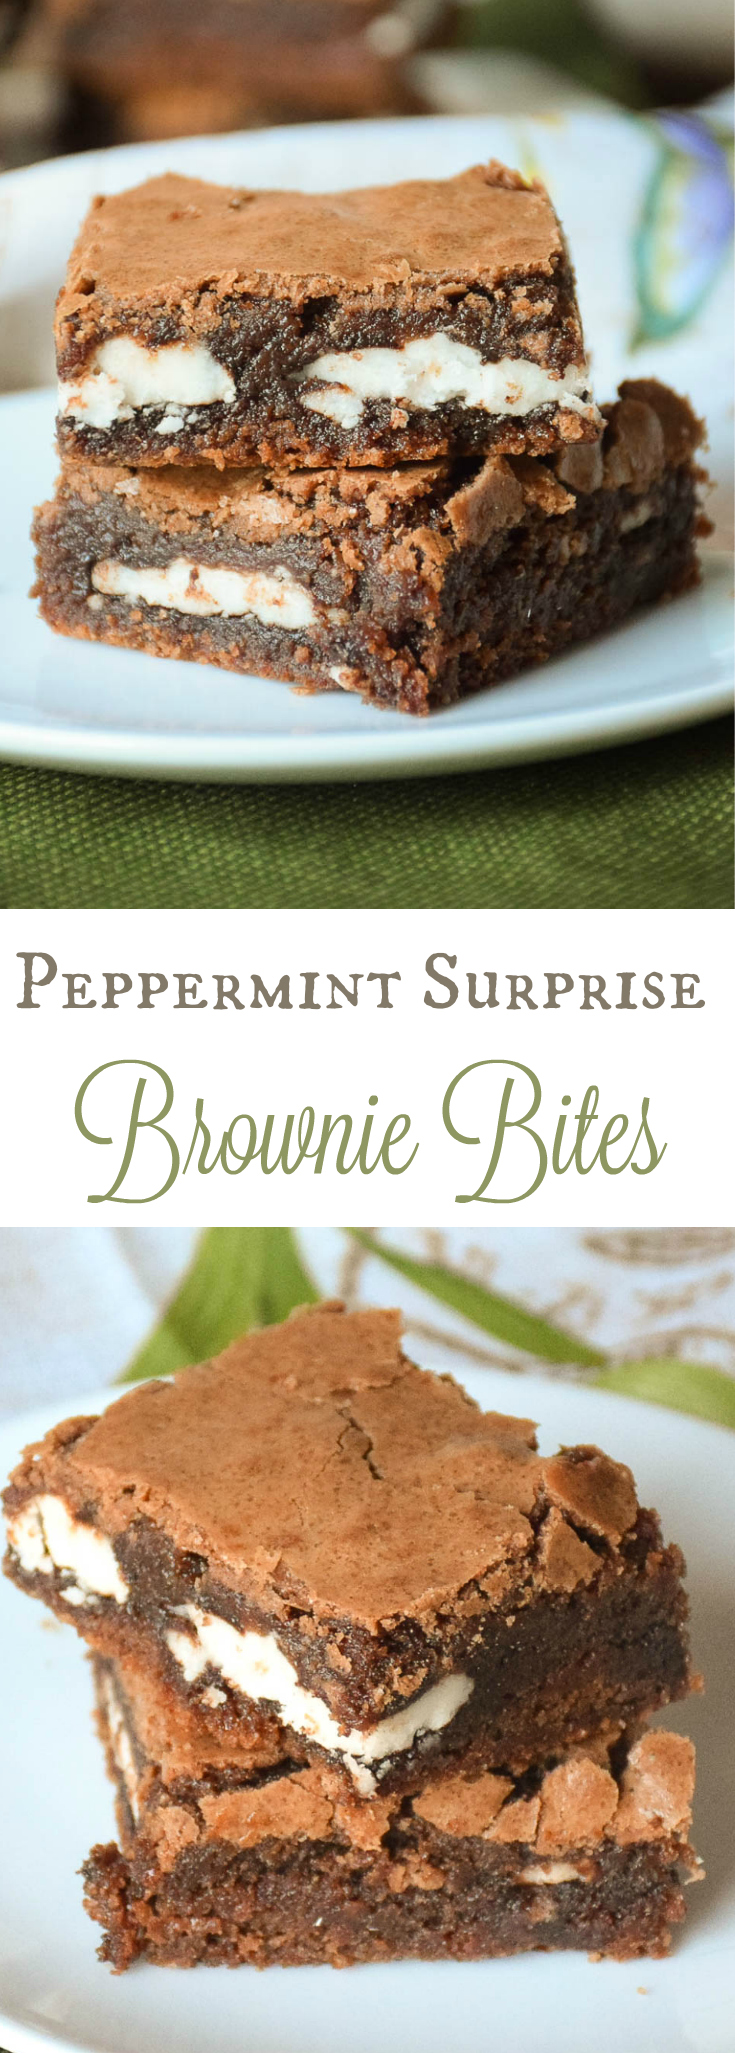 Peppermint Surprise Brownie Bites